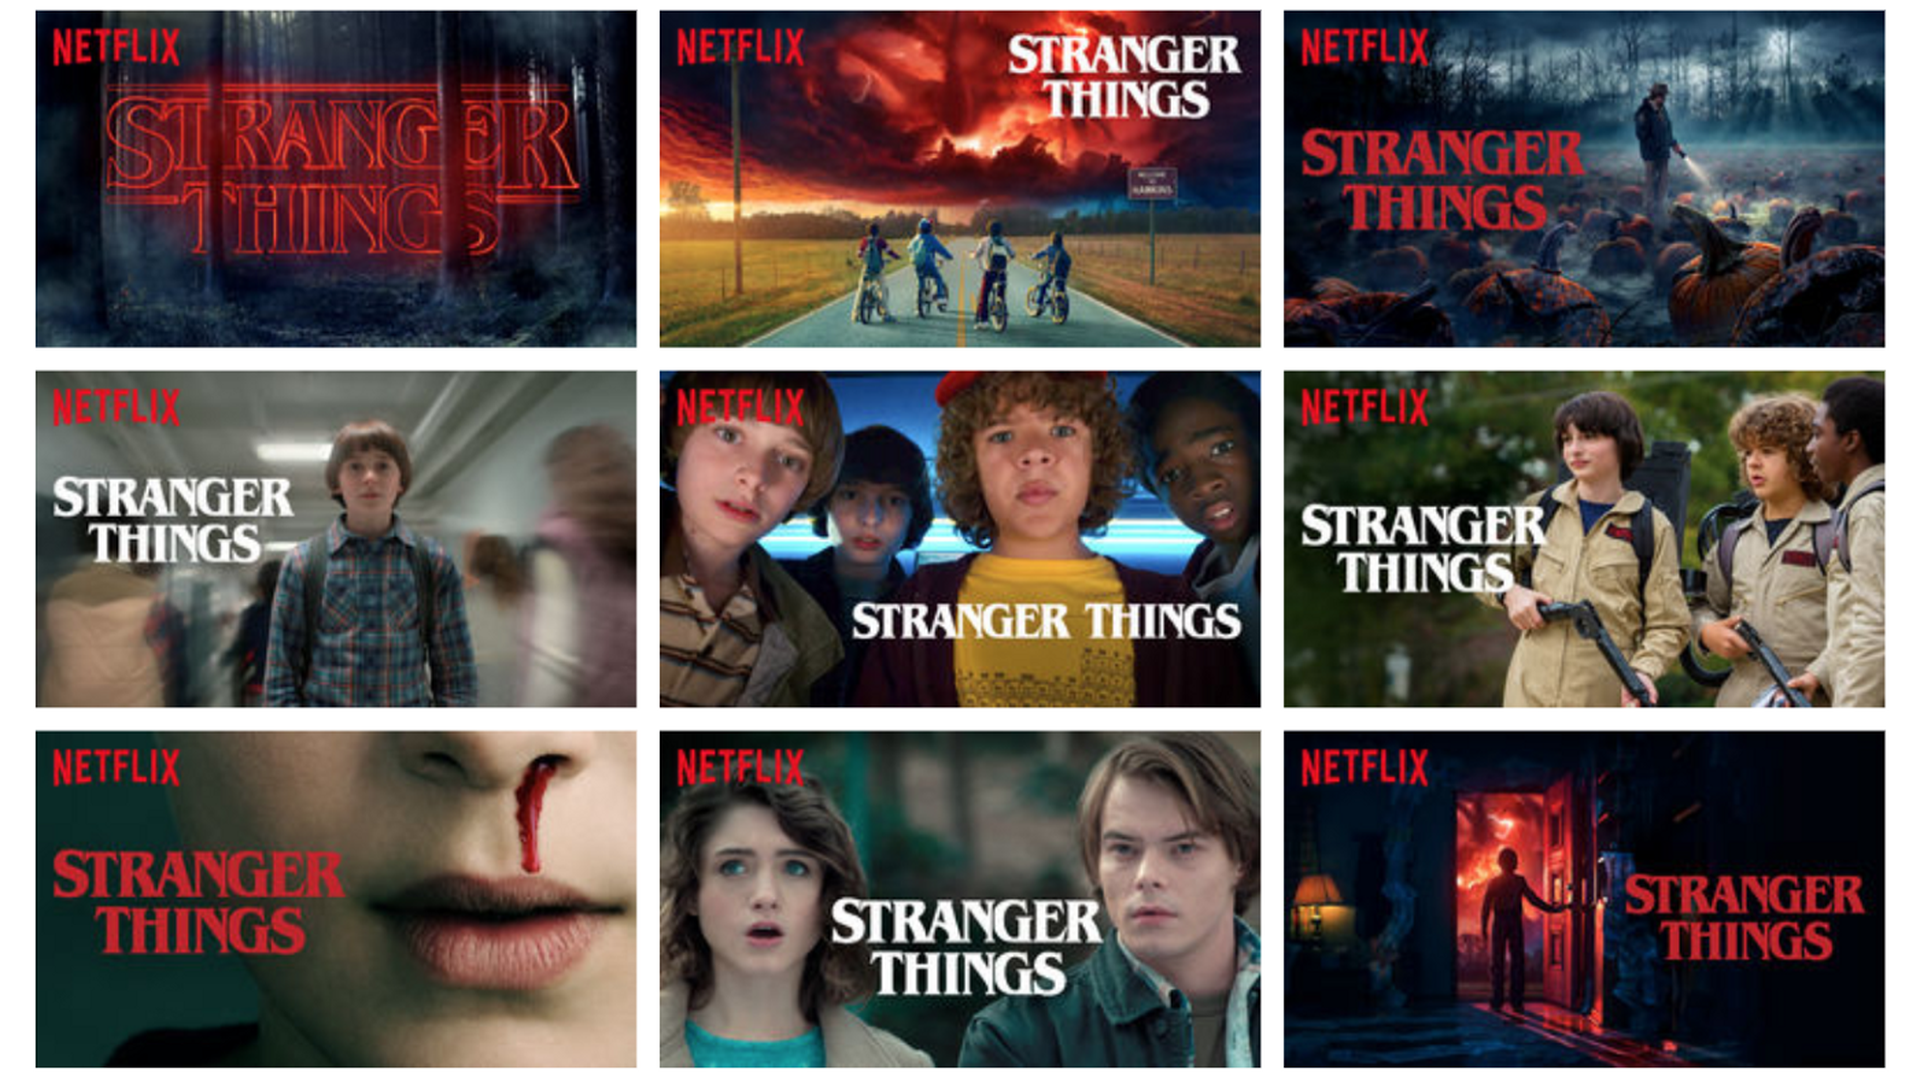 Various promos for Stranger Things